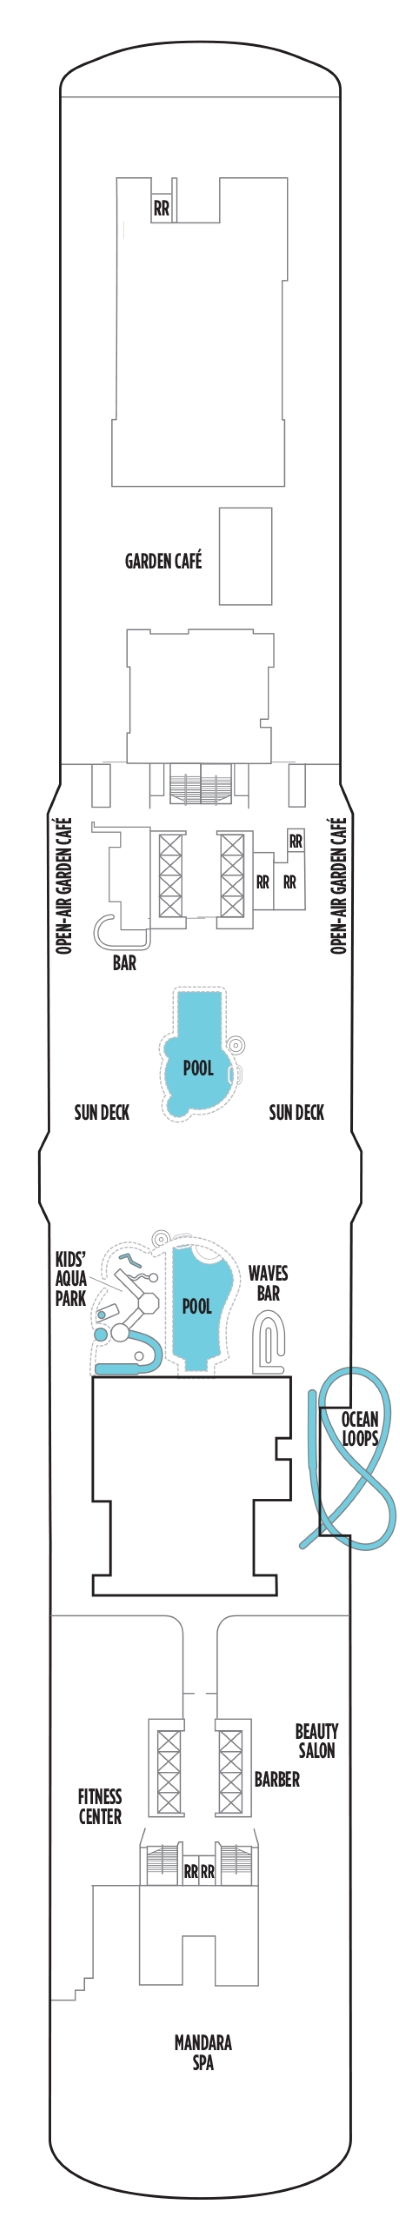 Norwegian Bliss Deck 16 layout